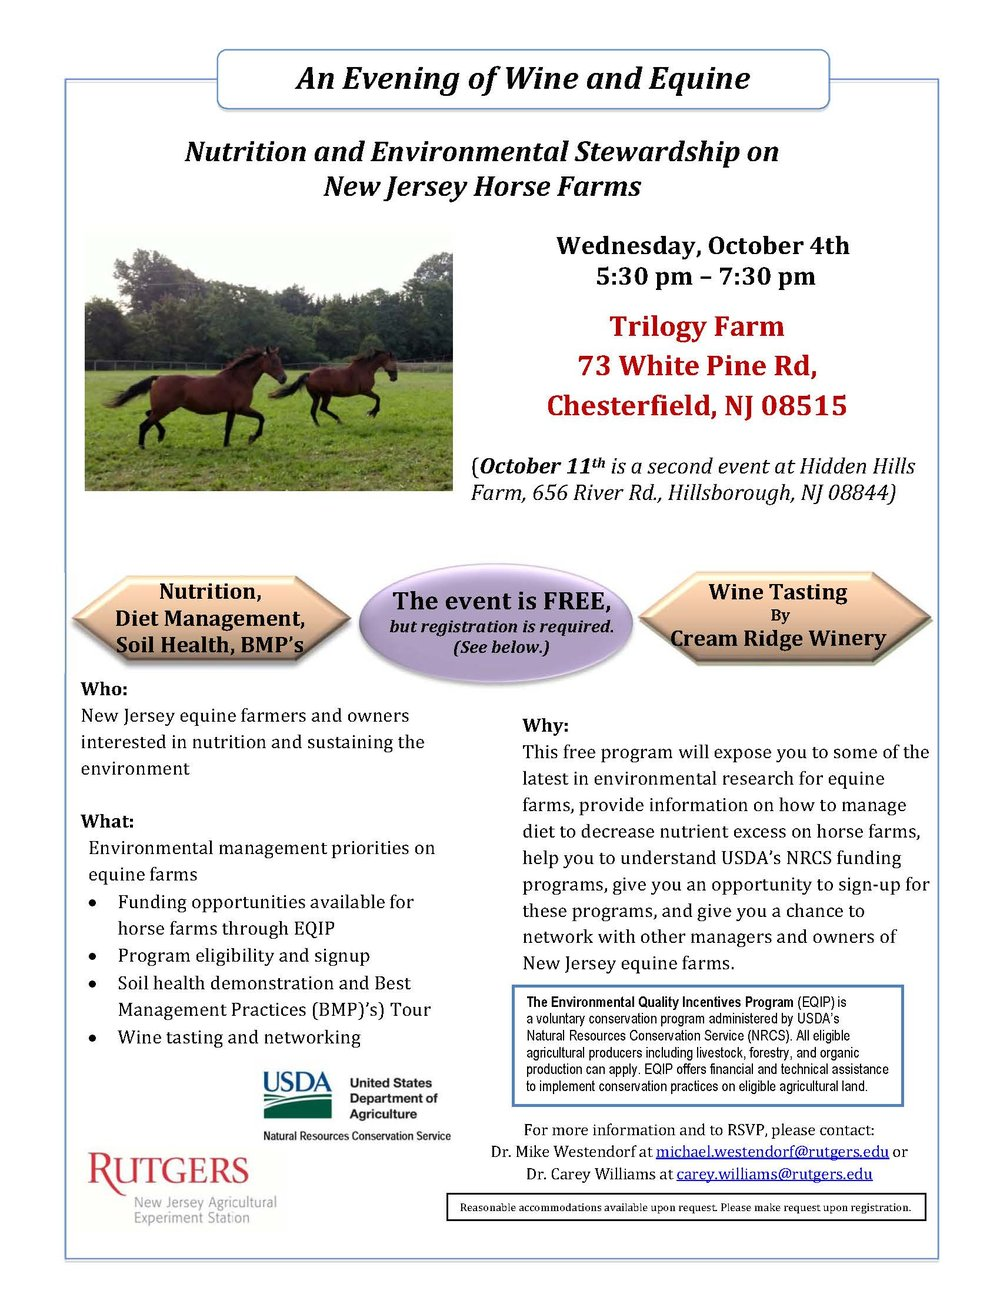 NRCS_flyer_Trilogy_Farm_Oct_4.jpg